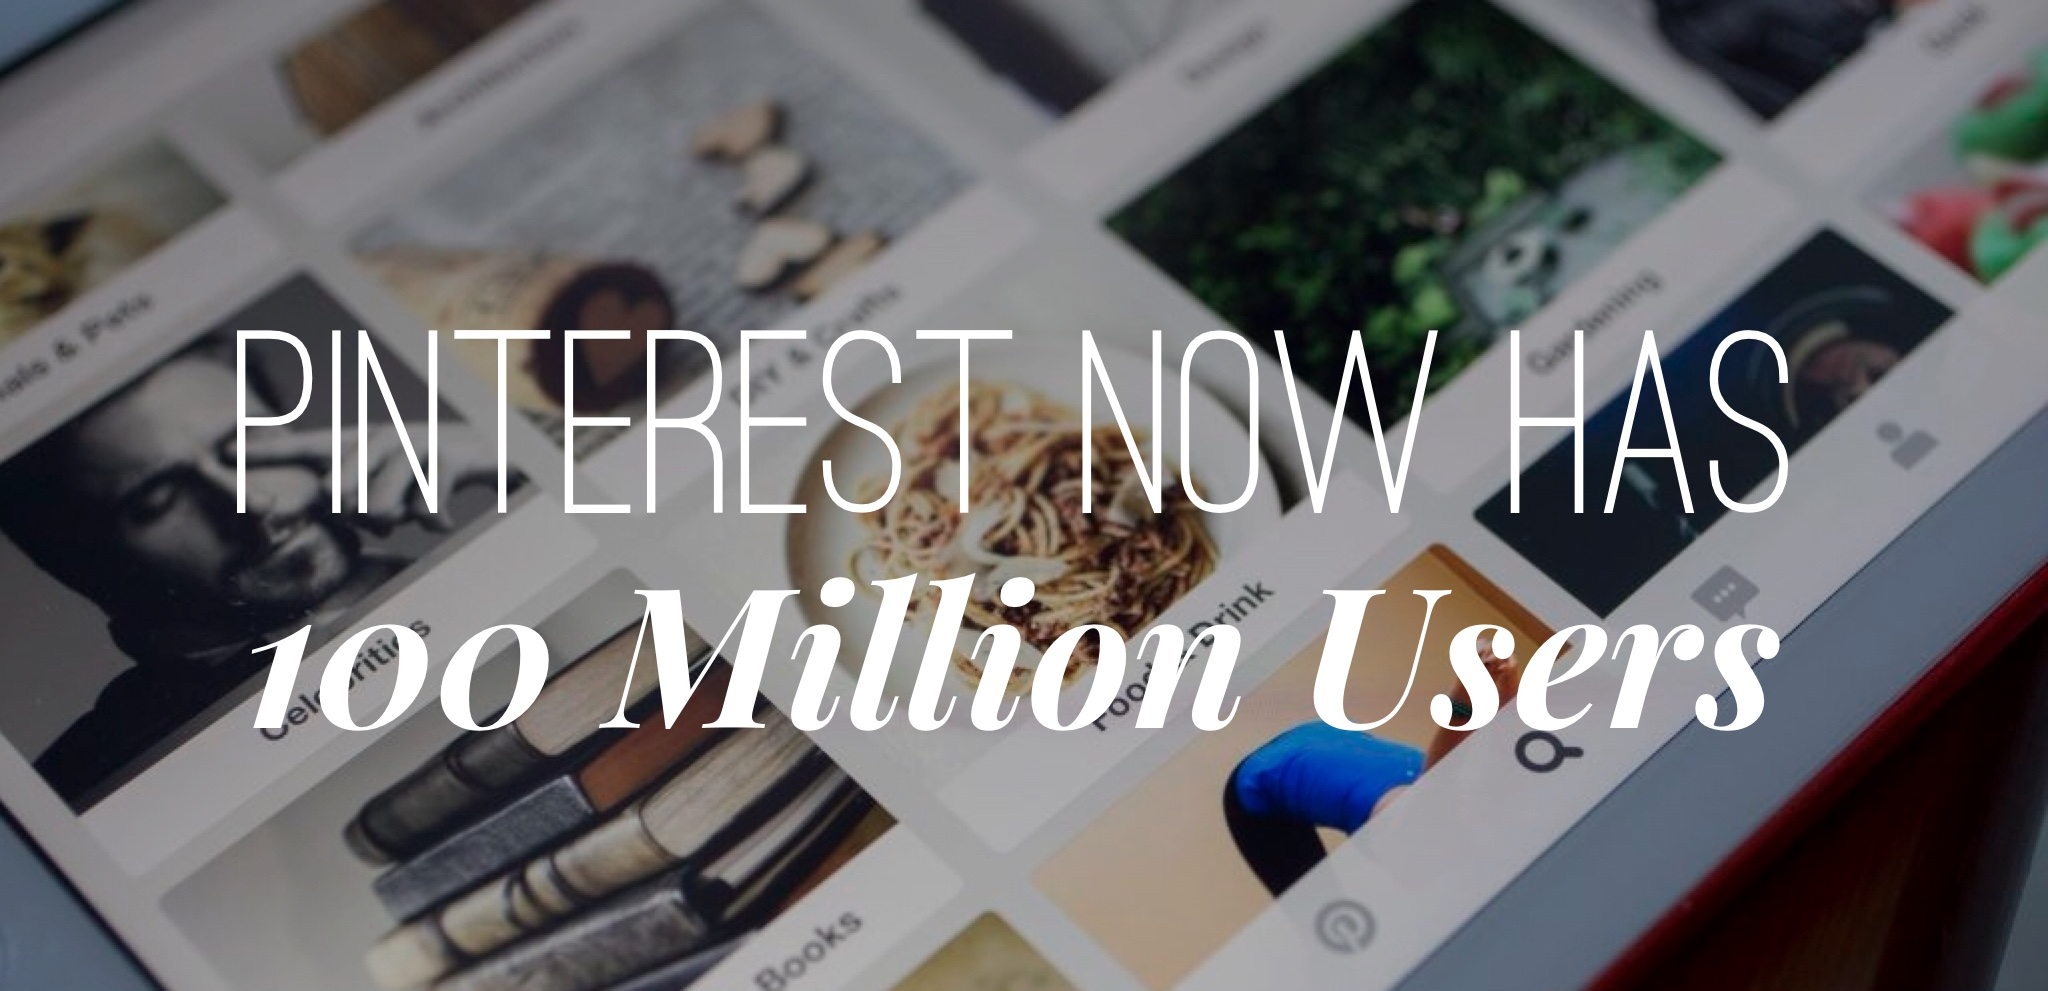 Pinterest-100-Million-Users